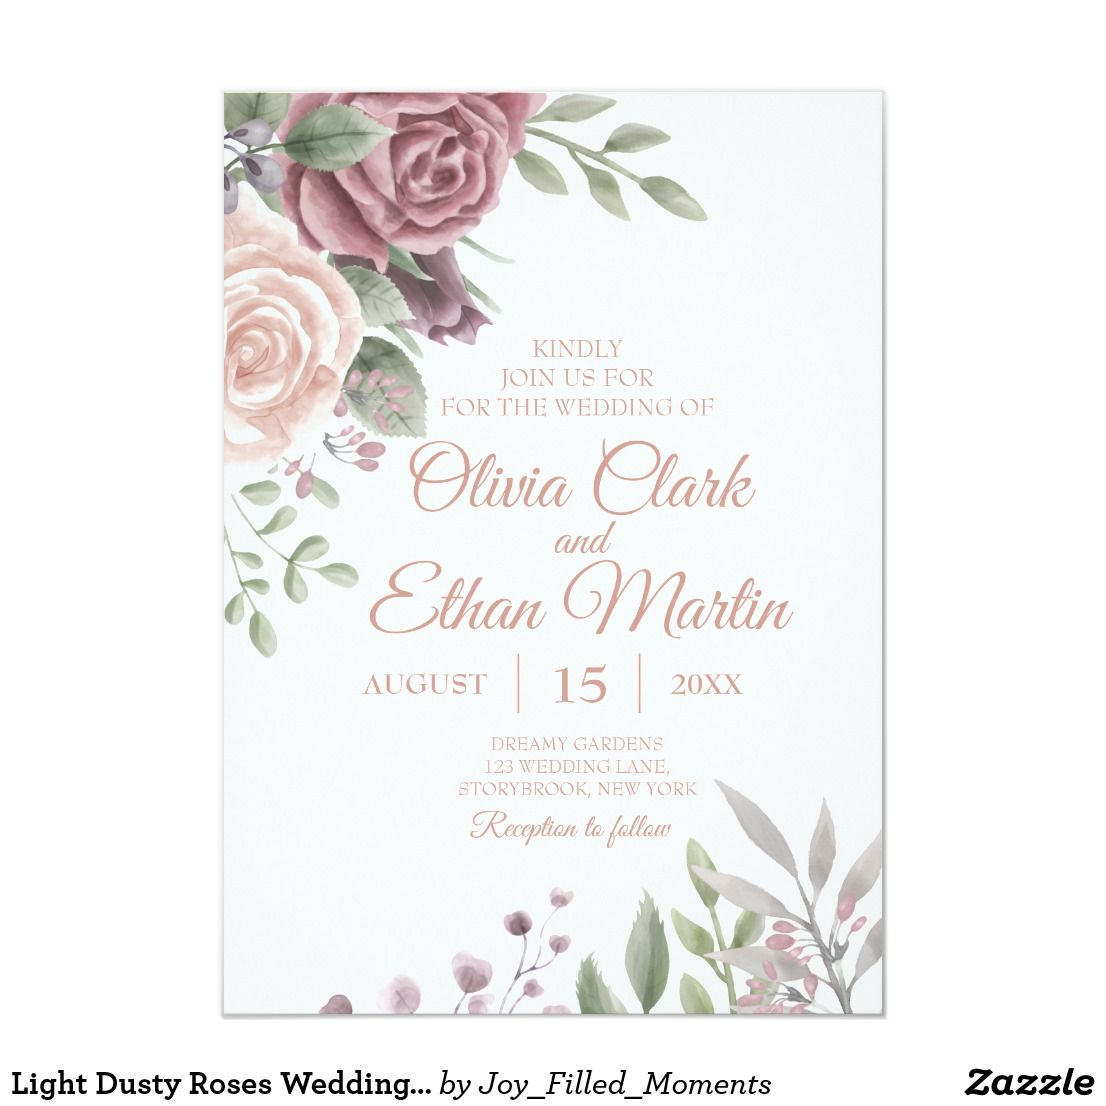 Light Dusty Roses Wedding Invitation An Elegant Watercolor Design Of Large Roses In Shad Rose Wedding Invitations Floral Wedding Invitations Dusty Rose Wedding